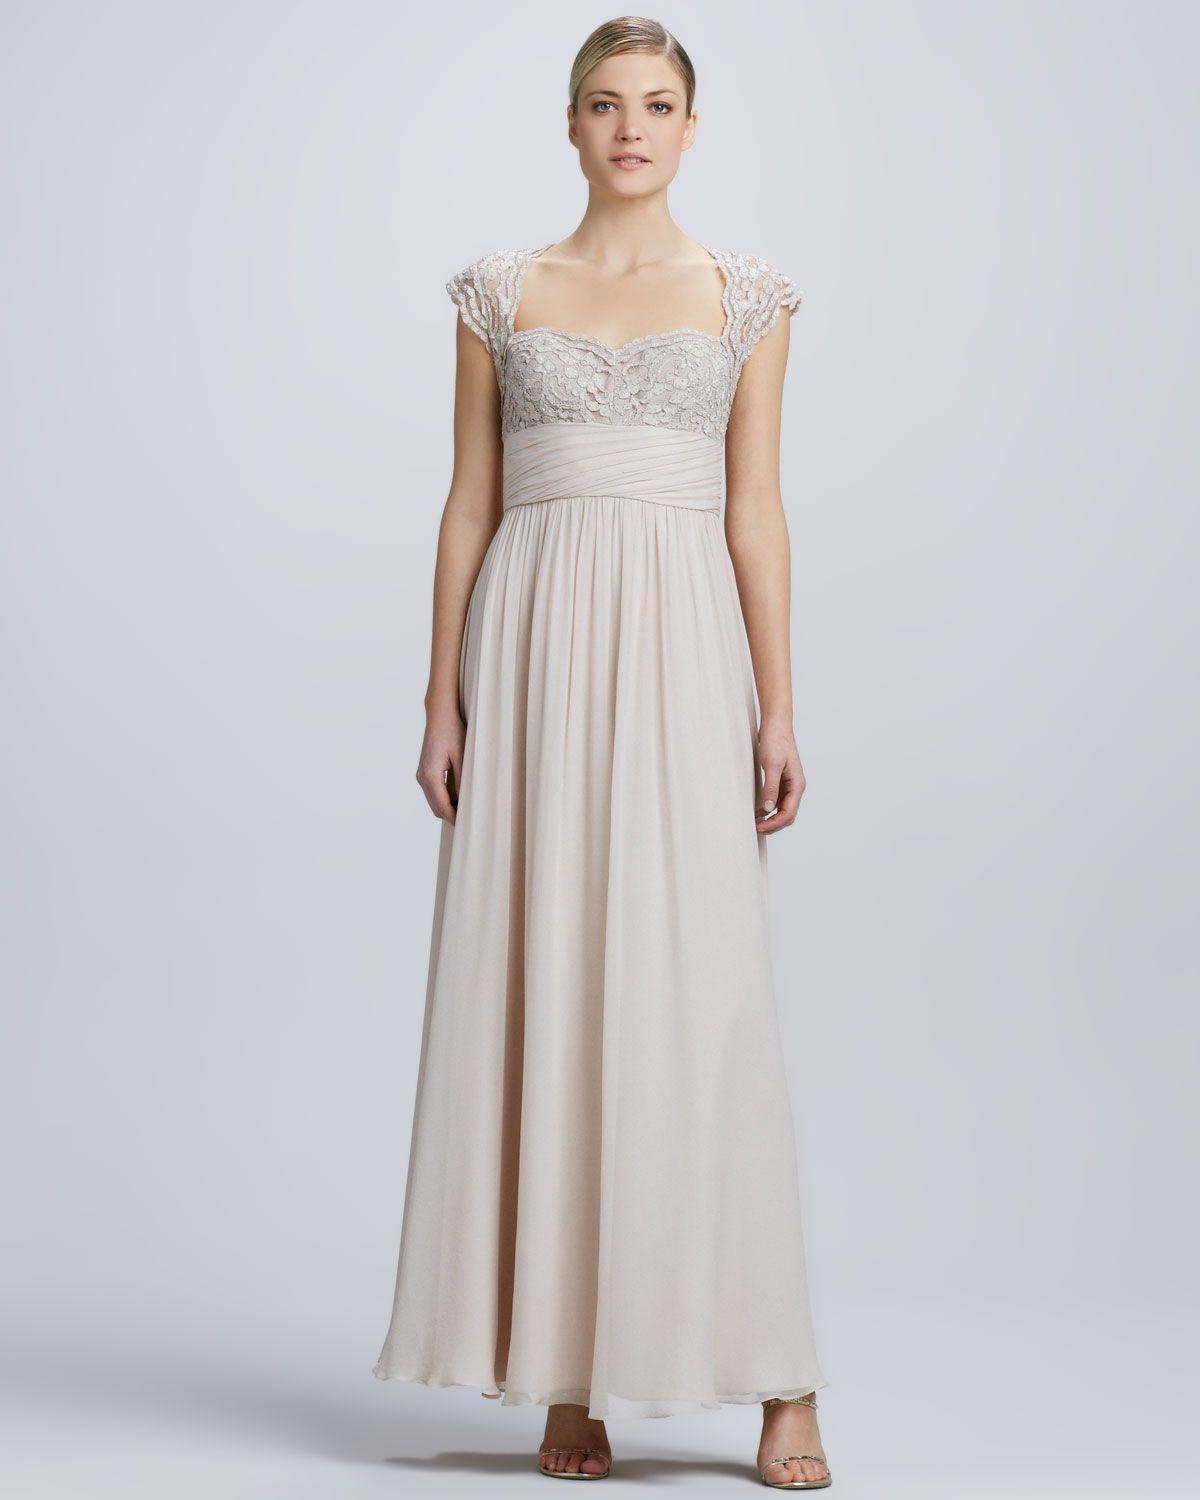 Aidan mattox lace chiffon cap sleeve gown dress is my weakness strapless chiffon high slit gown by aidan mattox at neiman marcus ombrellifo Image collections